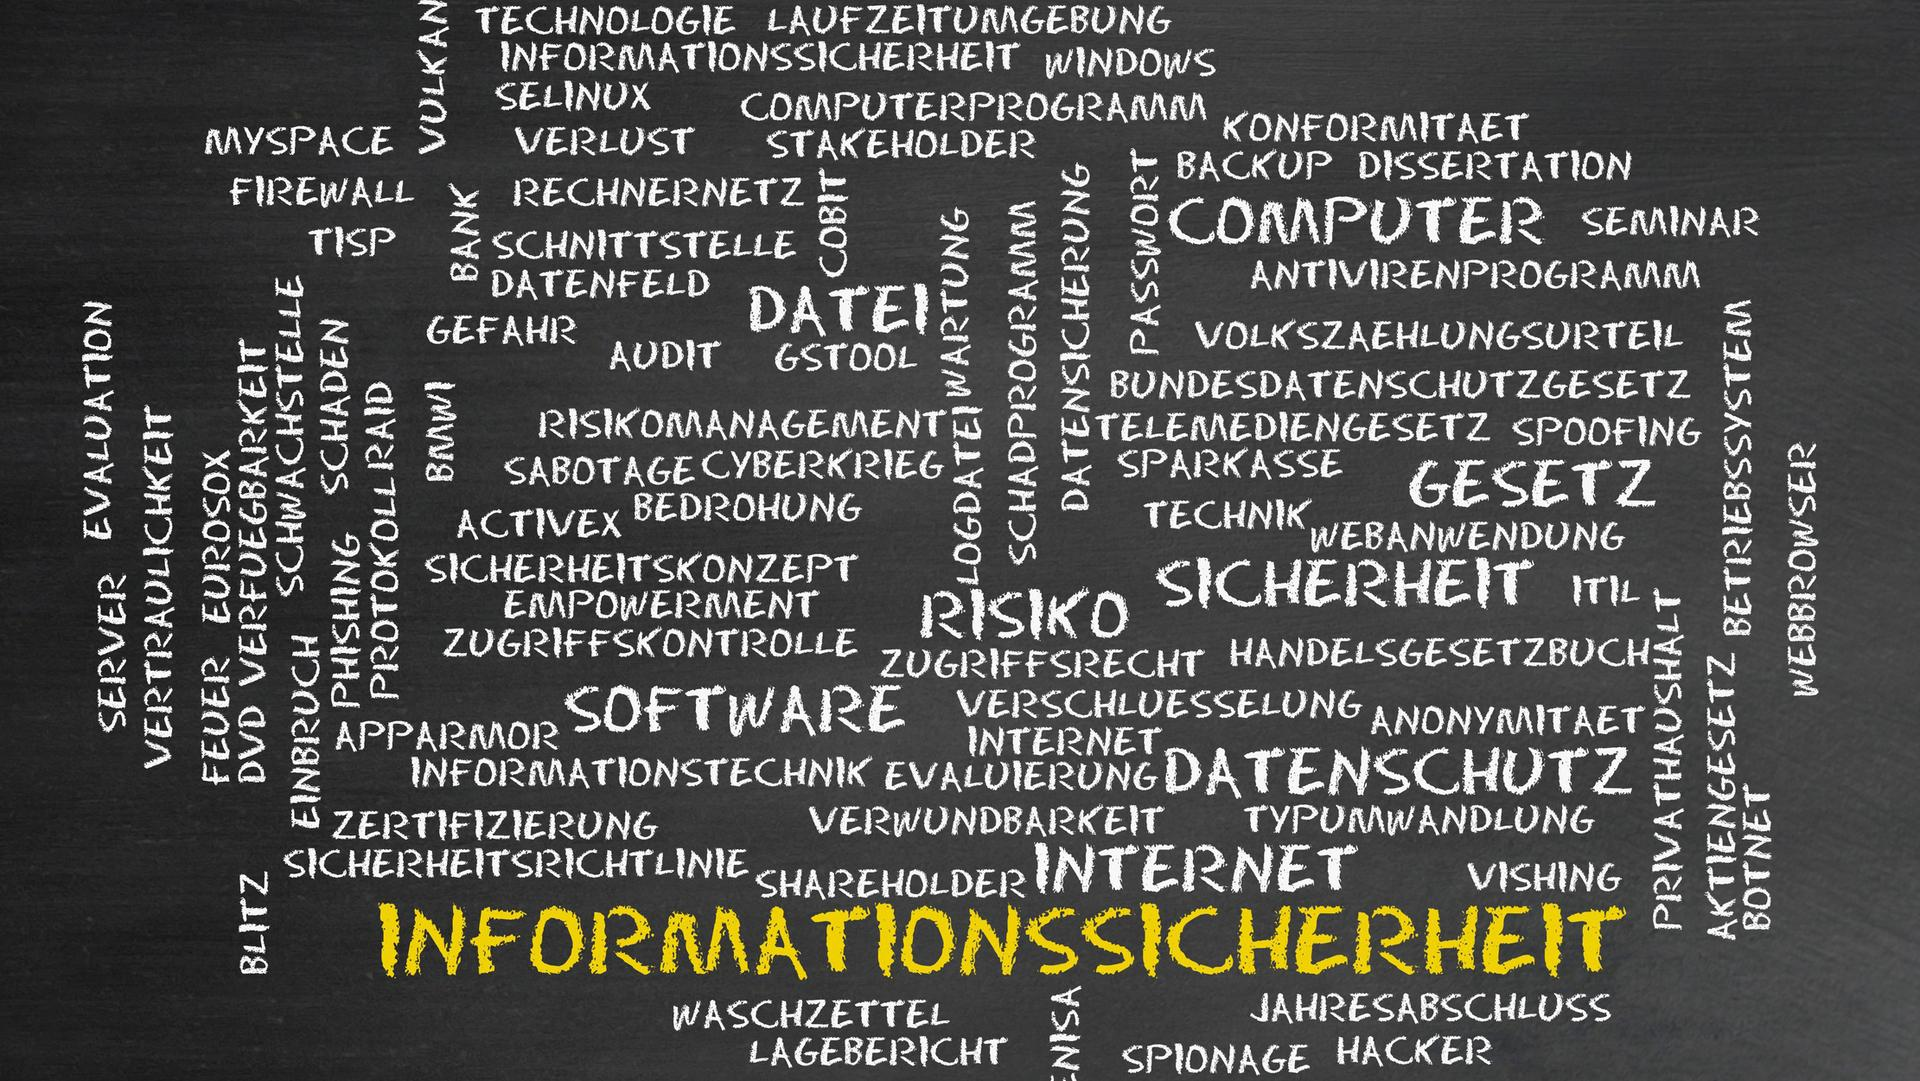 BWV Bildungsverband Informationssicherheit